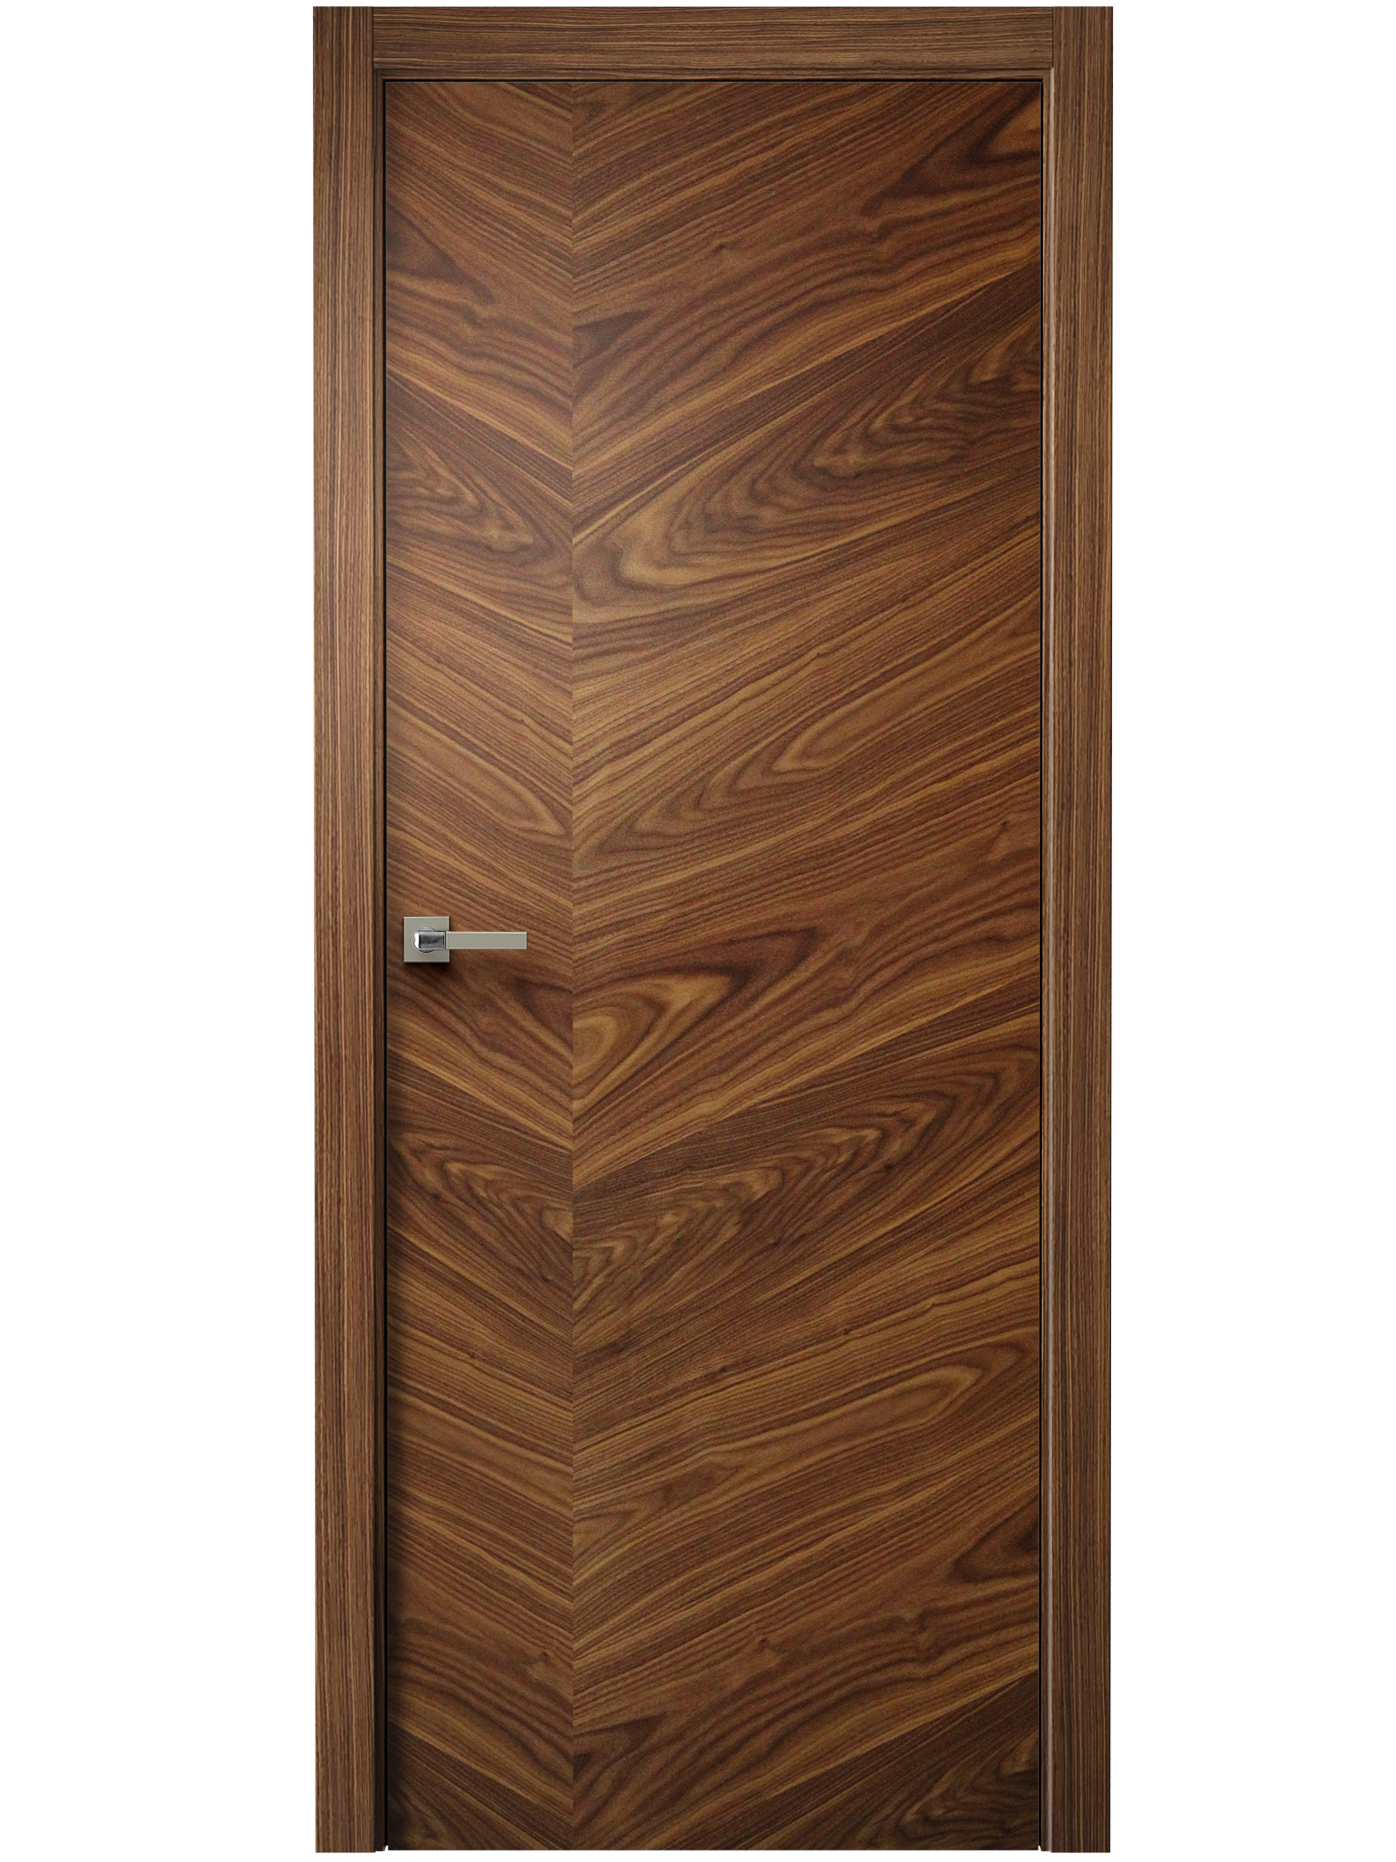 Image Tera V Interior Door American Walnut 0